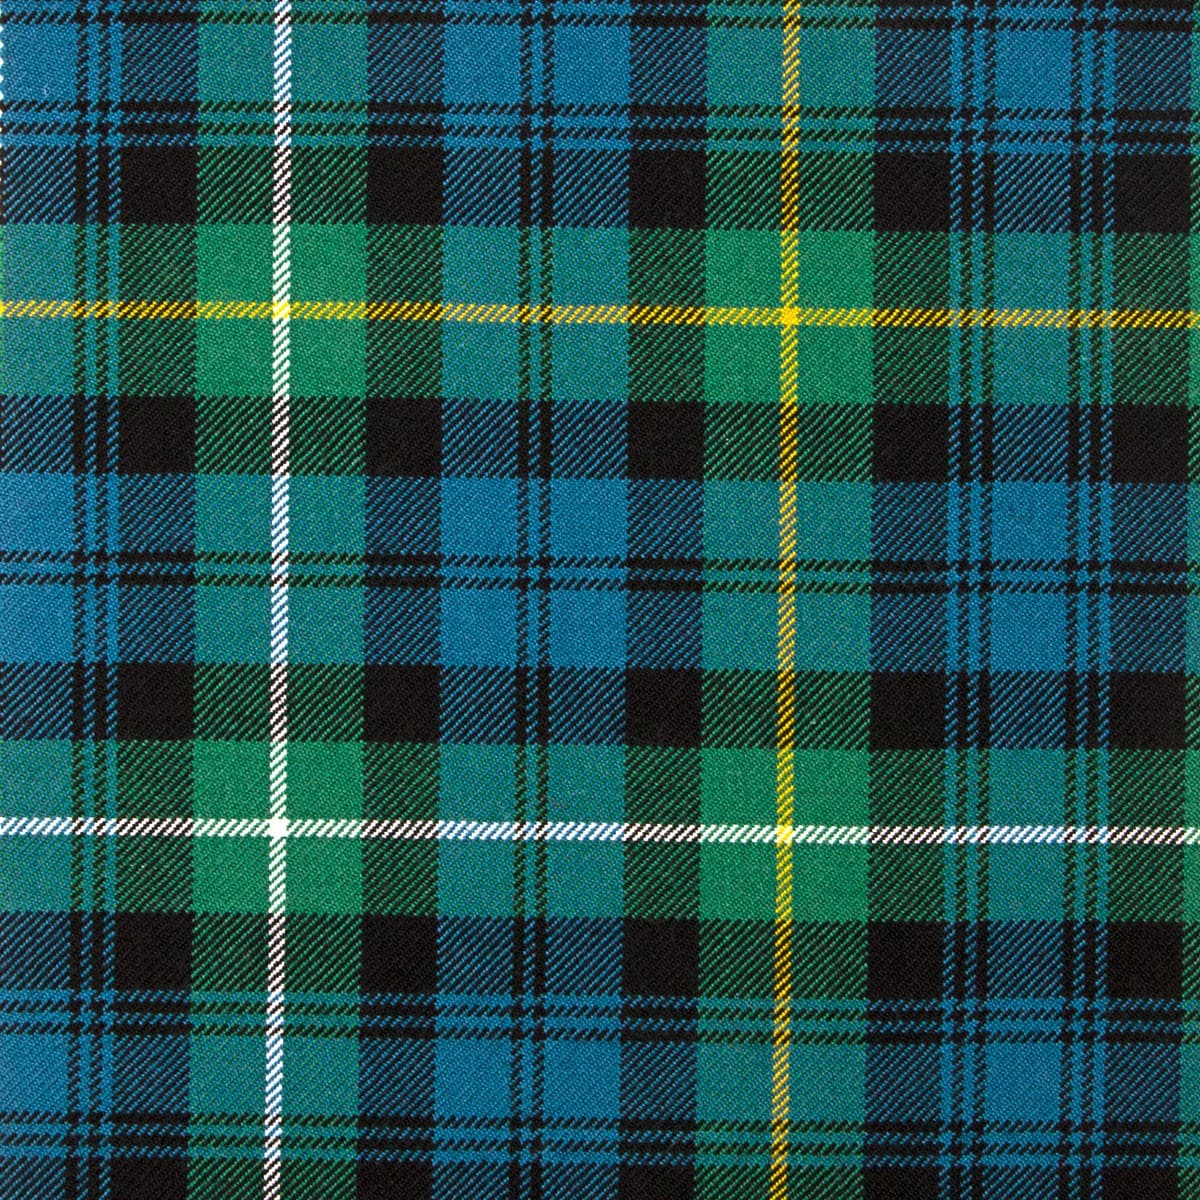 Campbell Tartan used in the fliming of Downton Abbey